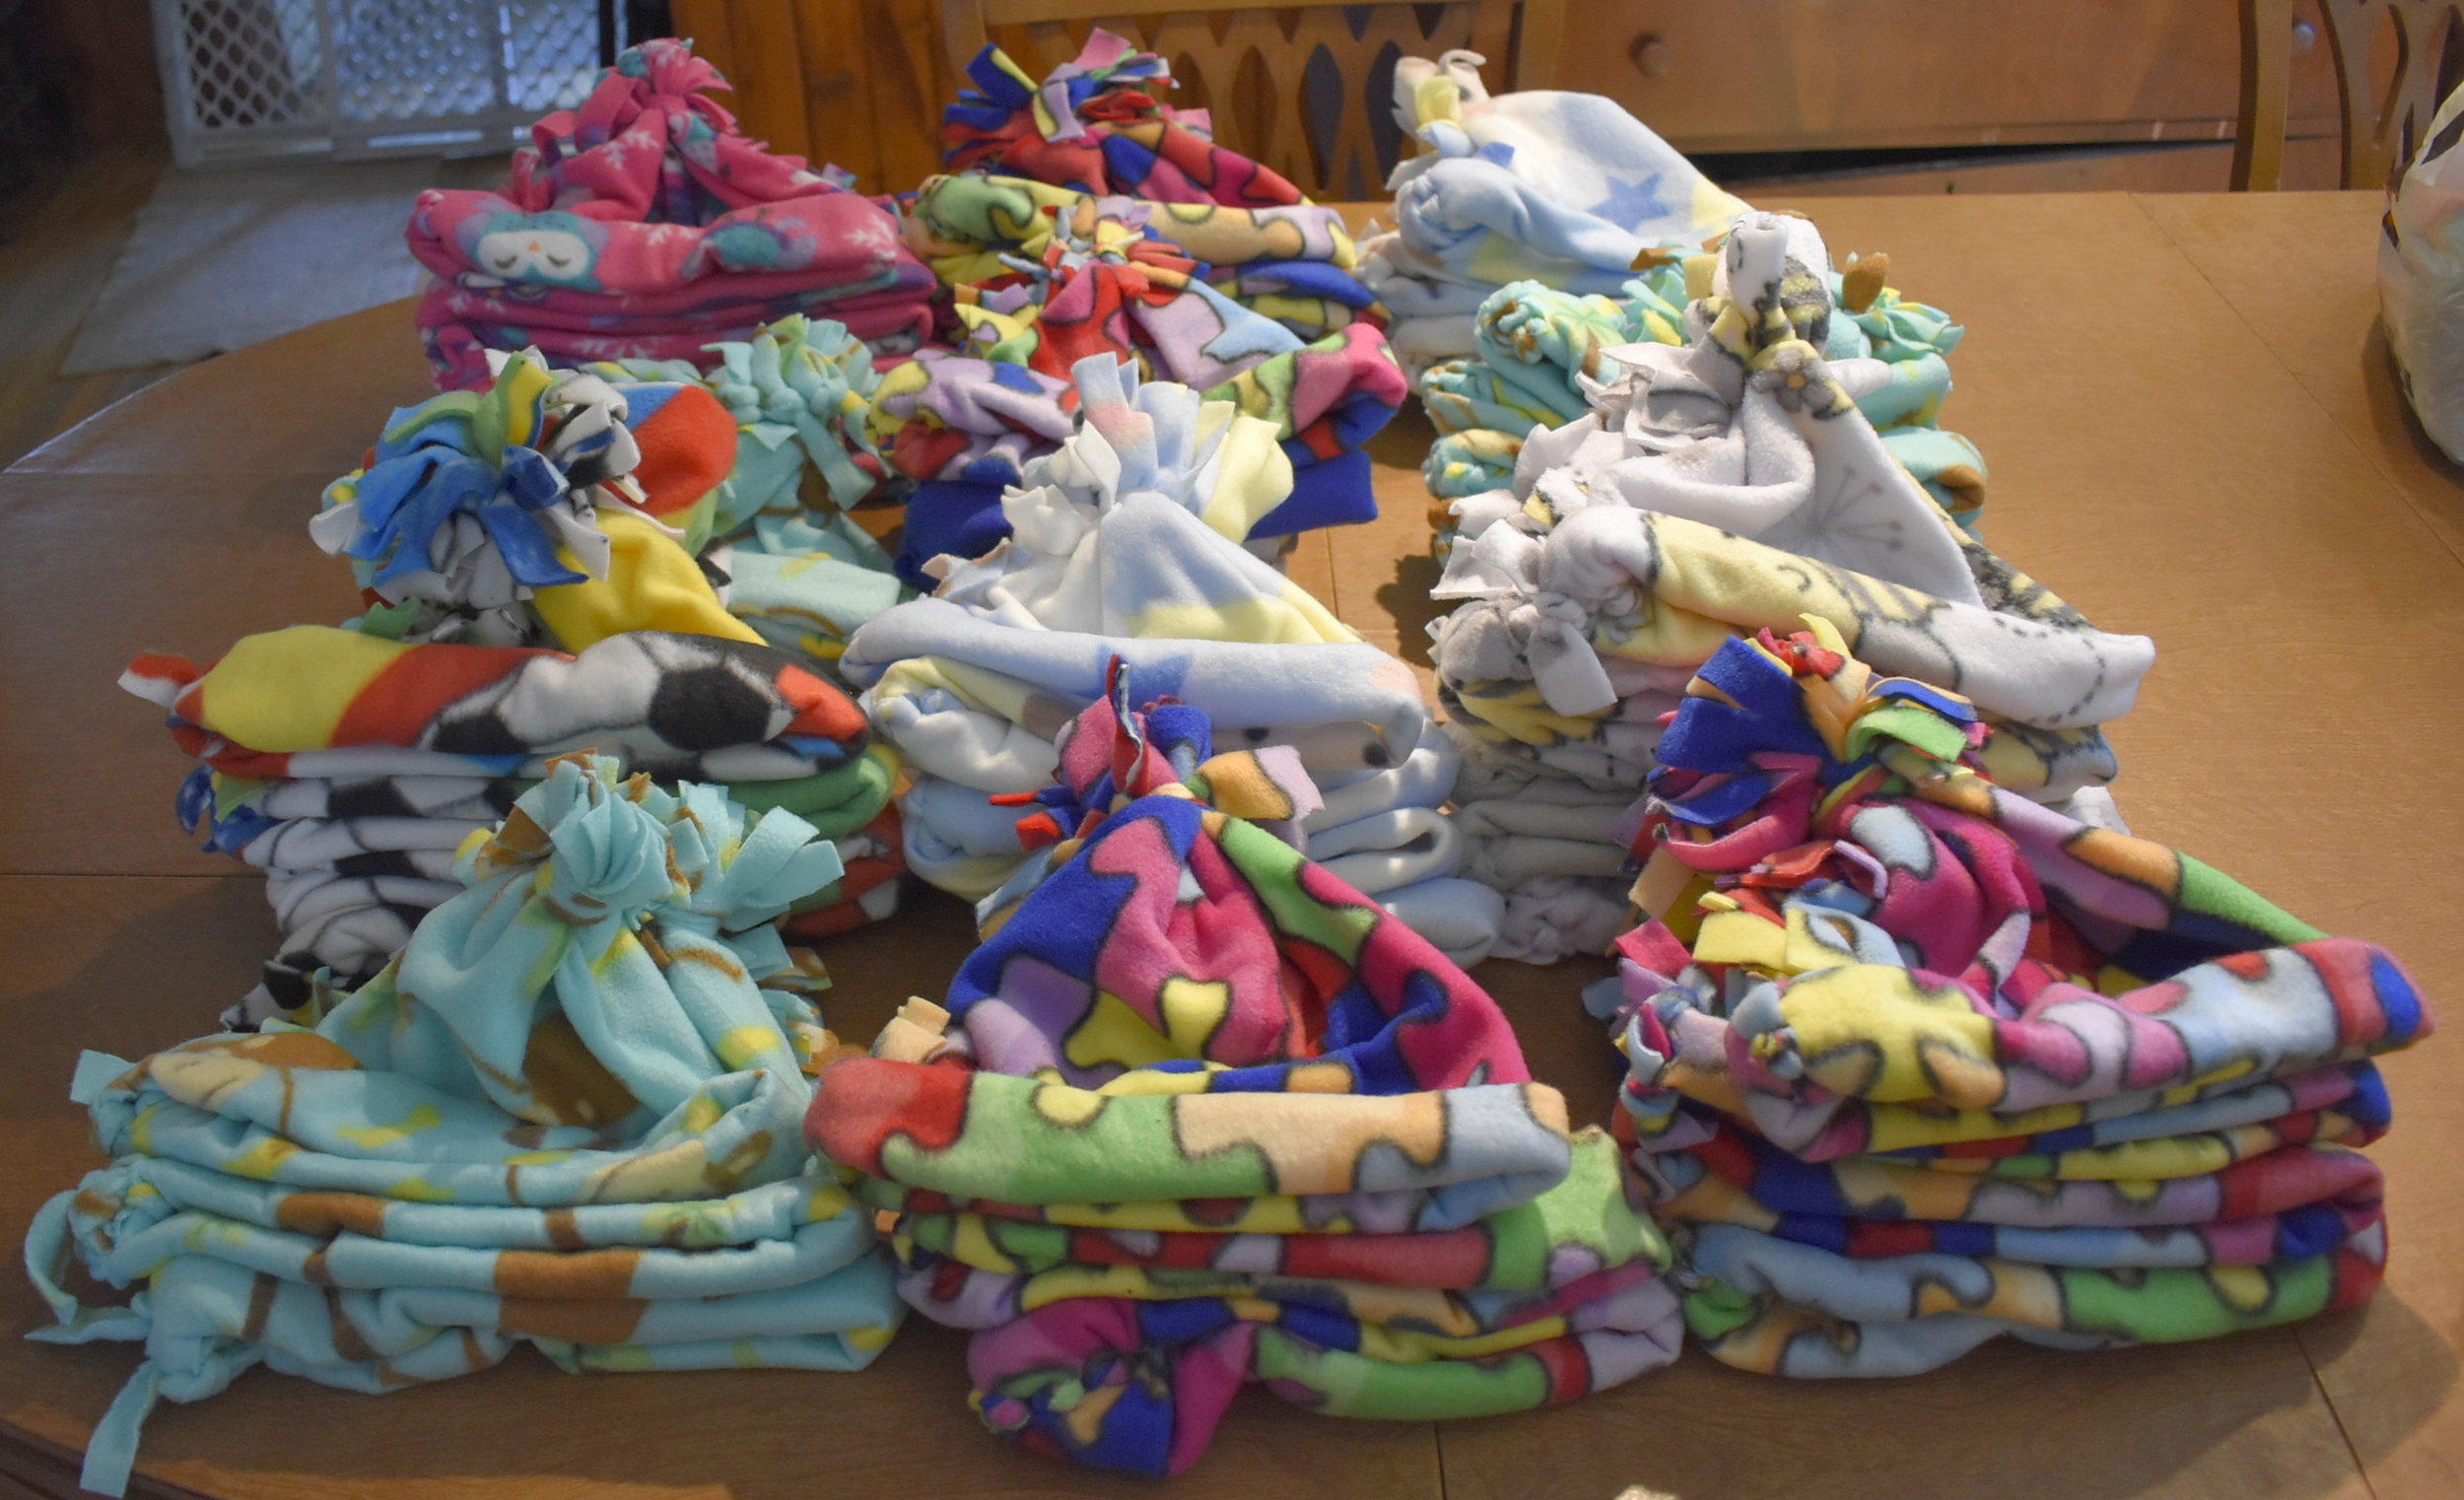 48 fleece hats and 2 fleece scarves for pediatric cancer patients at Children's Hospital in Minneapolis.